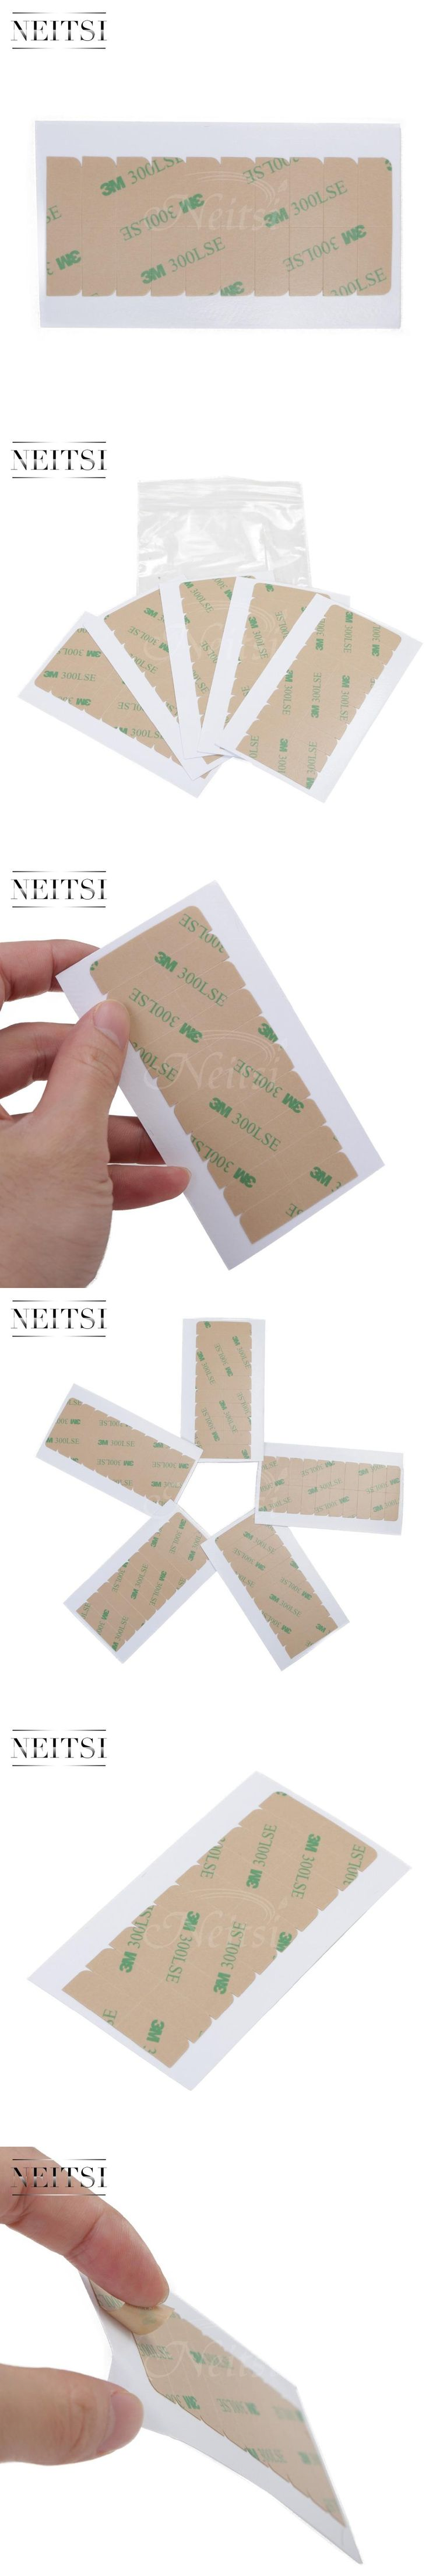 Neitsi 4cm*0.9cm 3M Double Sided Adhesive Tape For Skin Weft Tape Hair Extensions Super Adhesives Tape